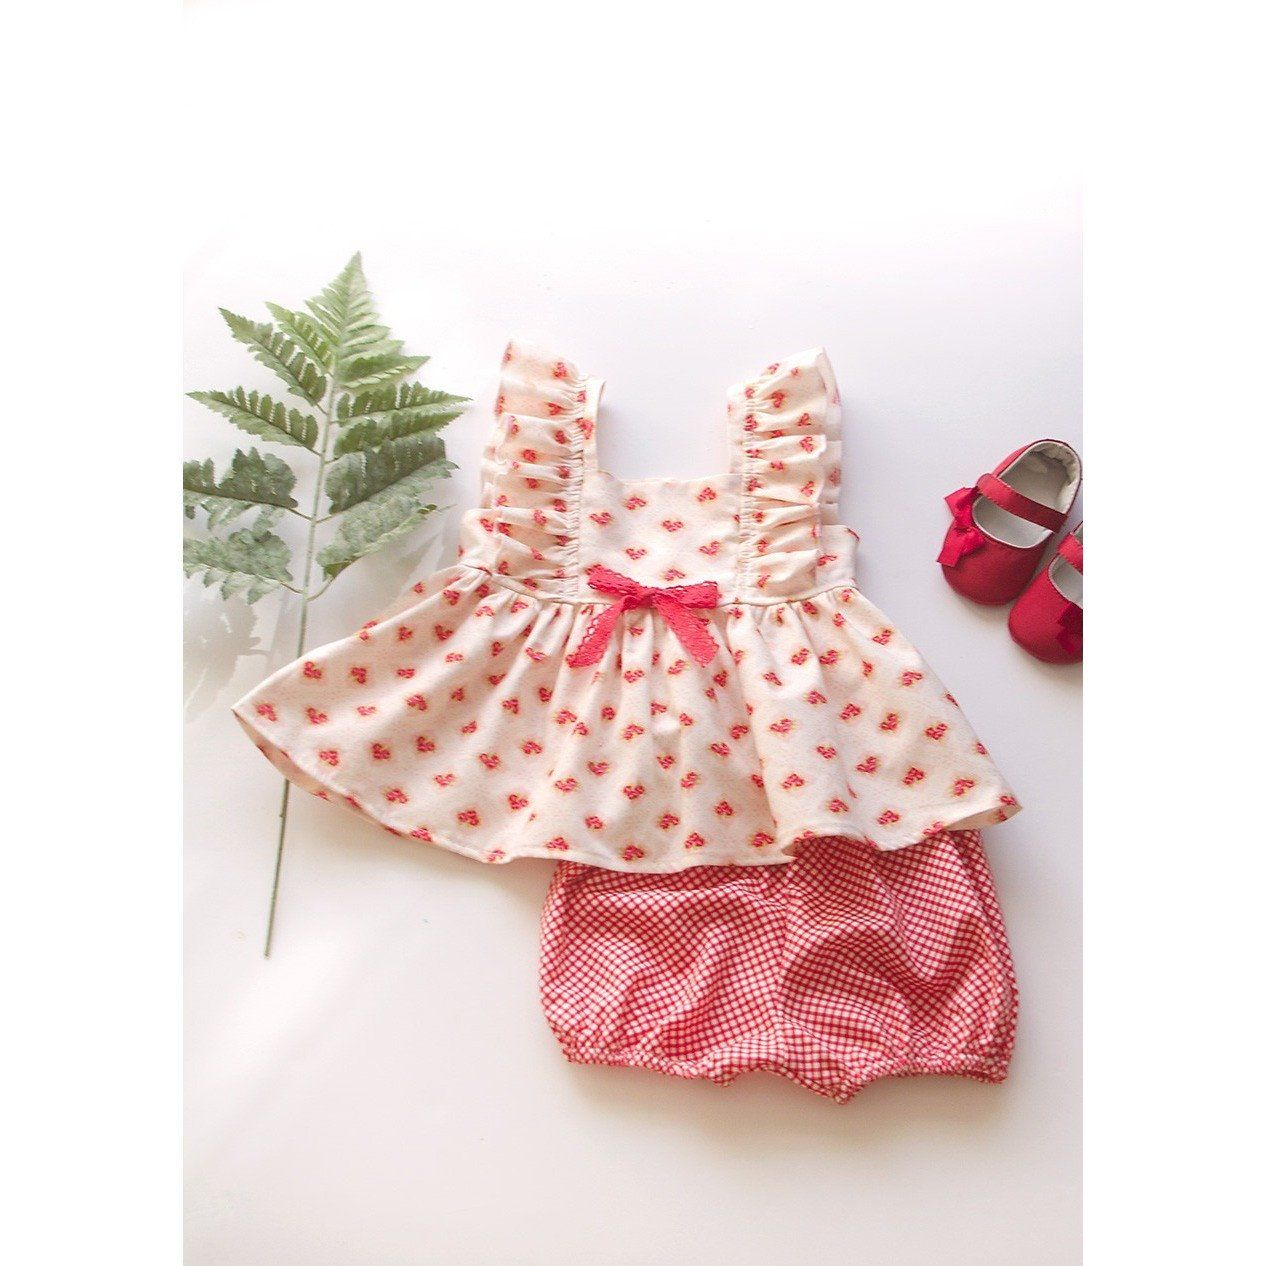 Welcome to summer fun with this two-piece baby girl shortie and flutter sleeve top.  Both pieces of handmade clothing are made out of 100% cotton fabric for a s